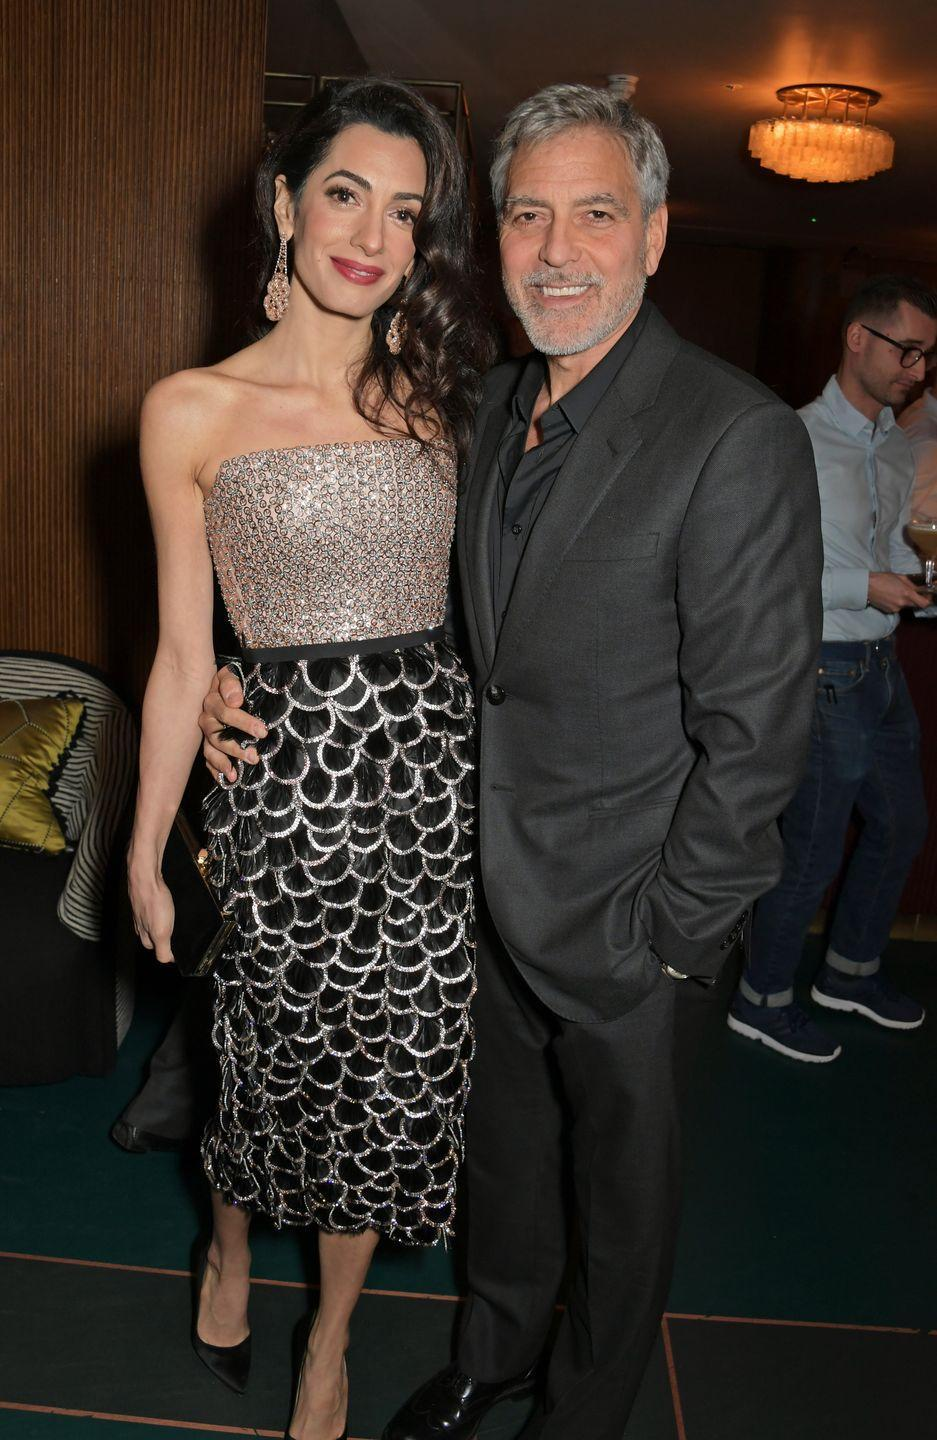 "<p>George and Amal Clooney's Italian nuptials weren't the cheapest. They spent<a href=""https://www.eonline.com/news/583879/inside-george-clooney-and-amal-alamuddin-s-4-6-million-wedding"" rel=""nofollow noopener"" target=""_blank"" data-ylk=""slk:$3 million on housing"" class=""link rapid-noclick-resp""> $3 million on housing </a>alone for all of their guests, which is super nice, but still! In total, the wedding cost around $4.6 million. </p>"